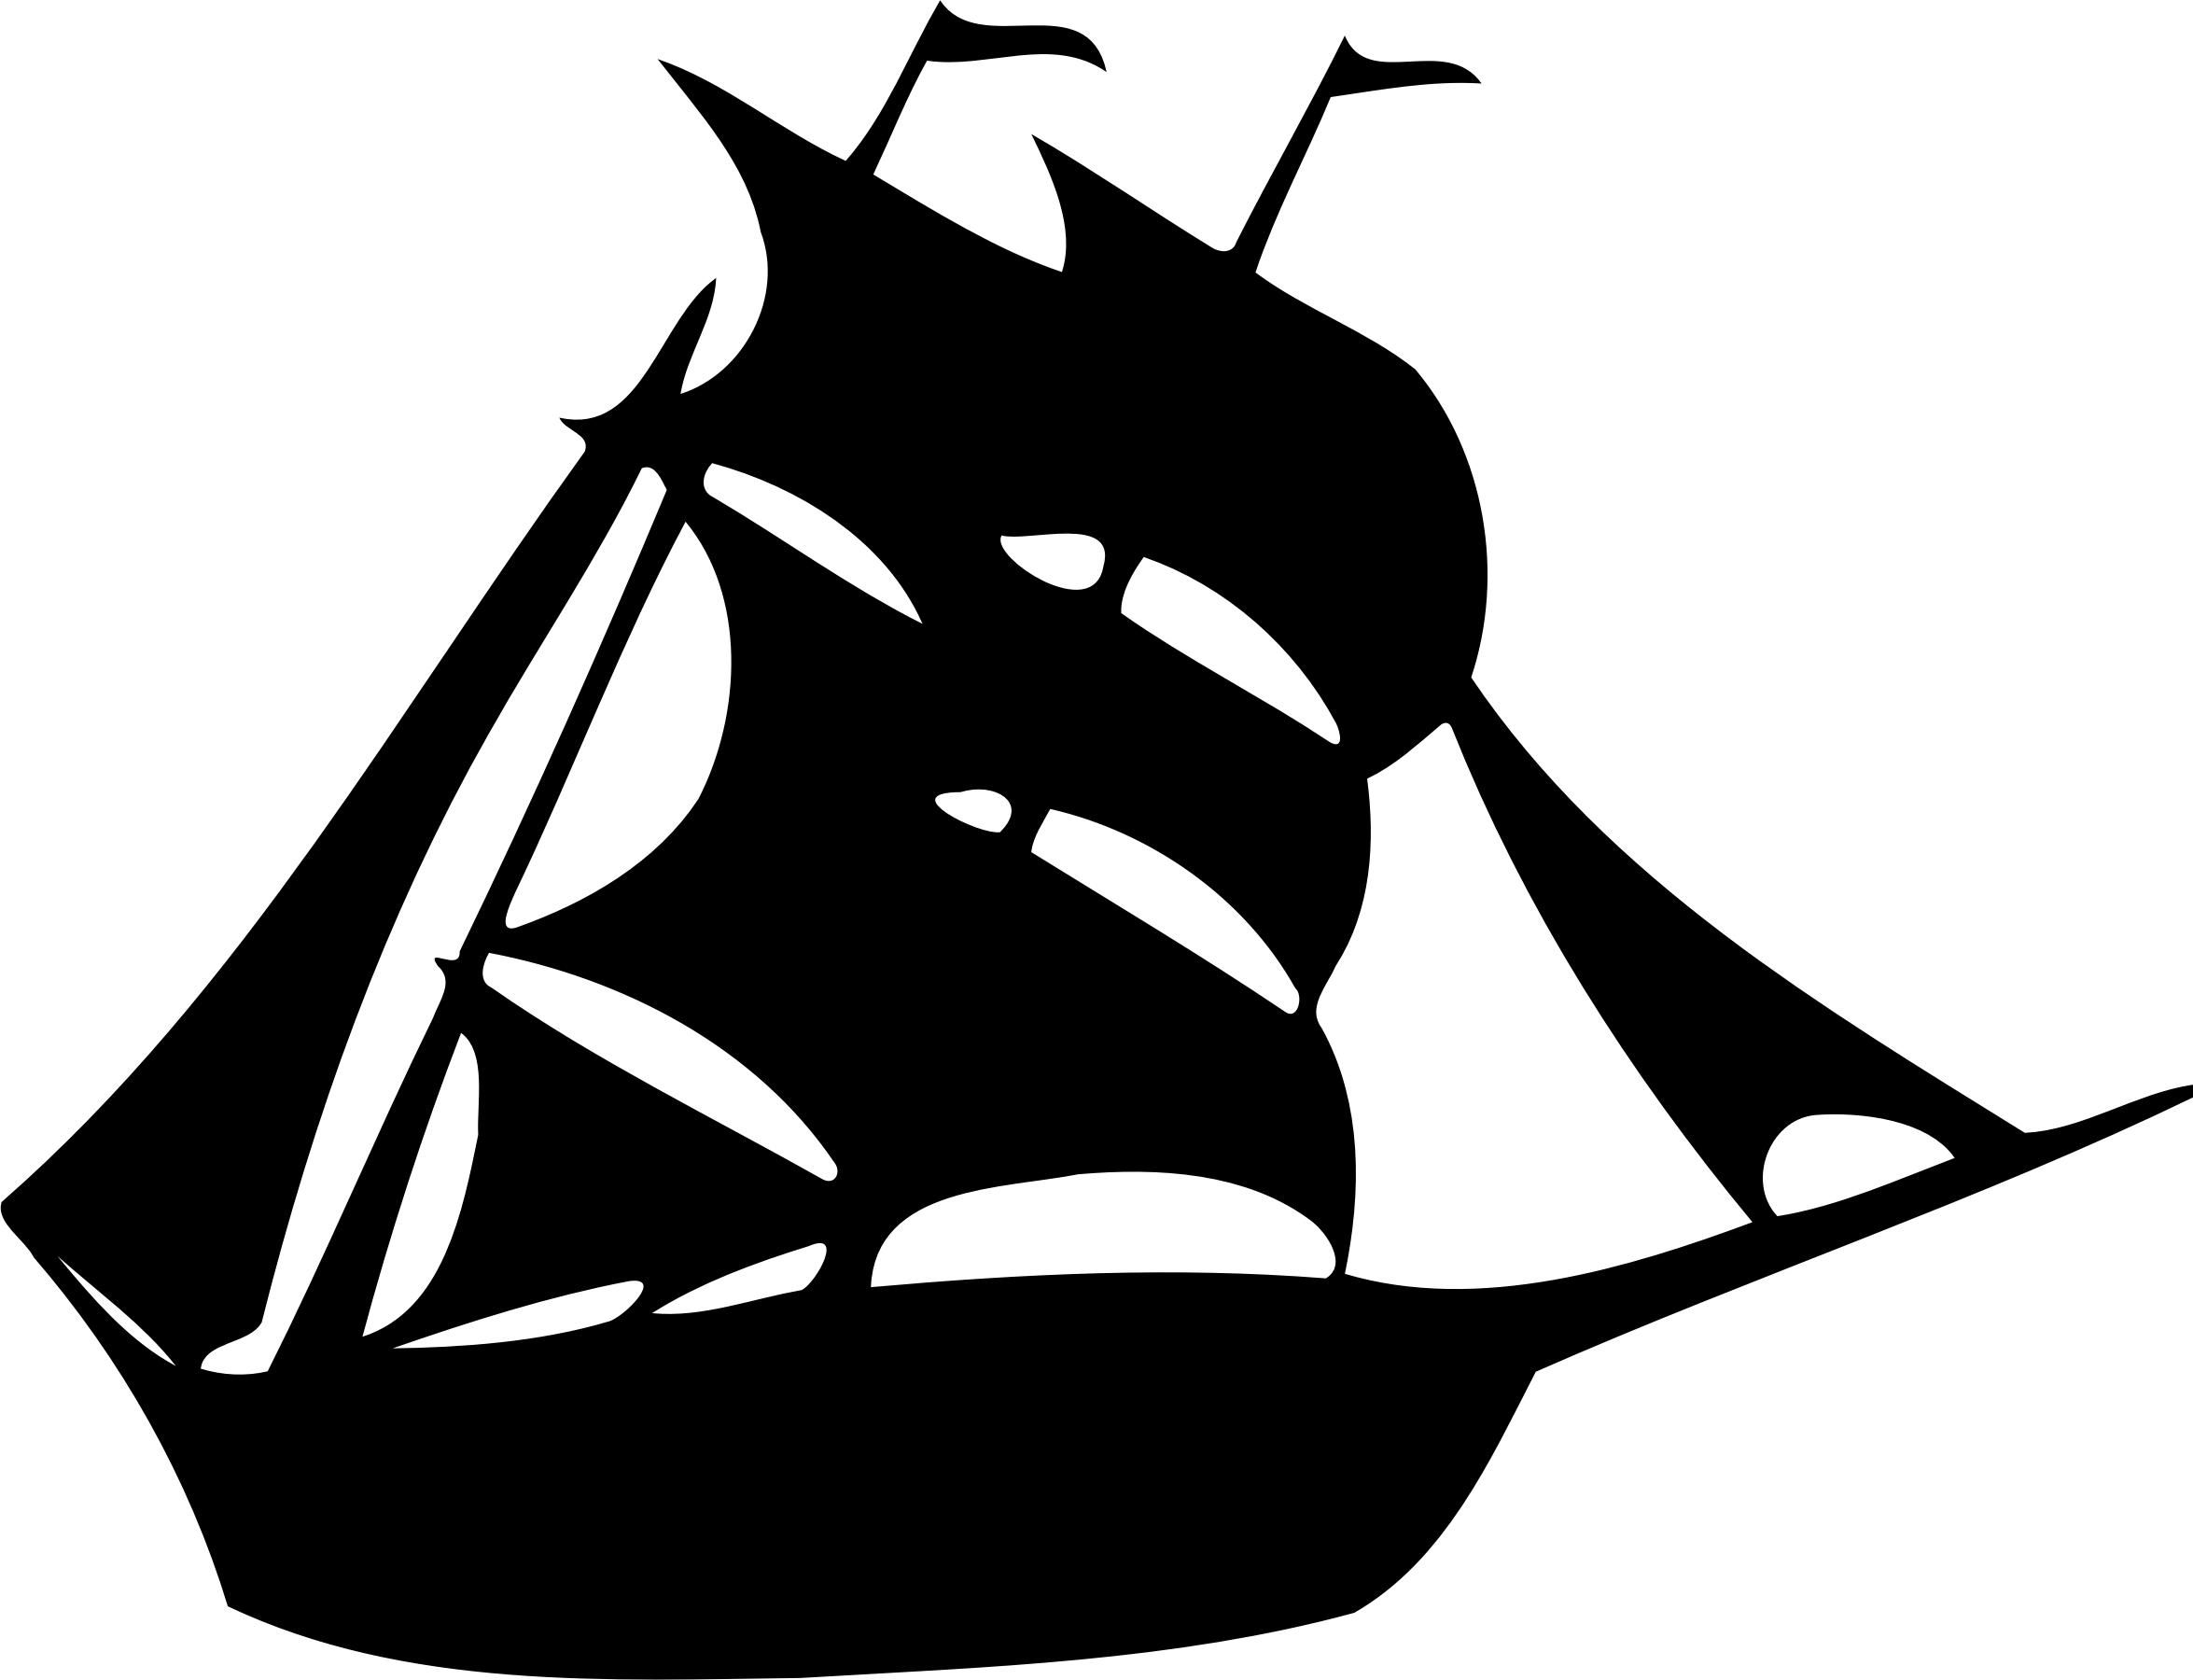 Ship Silhouette Ship Silhouette Boat Silhouette Silhouette Png